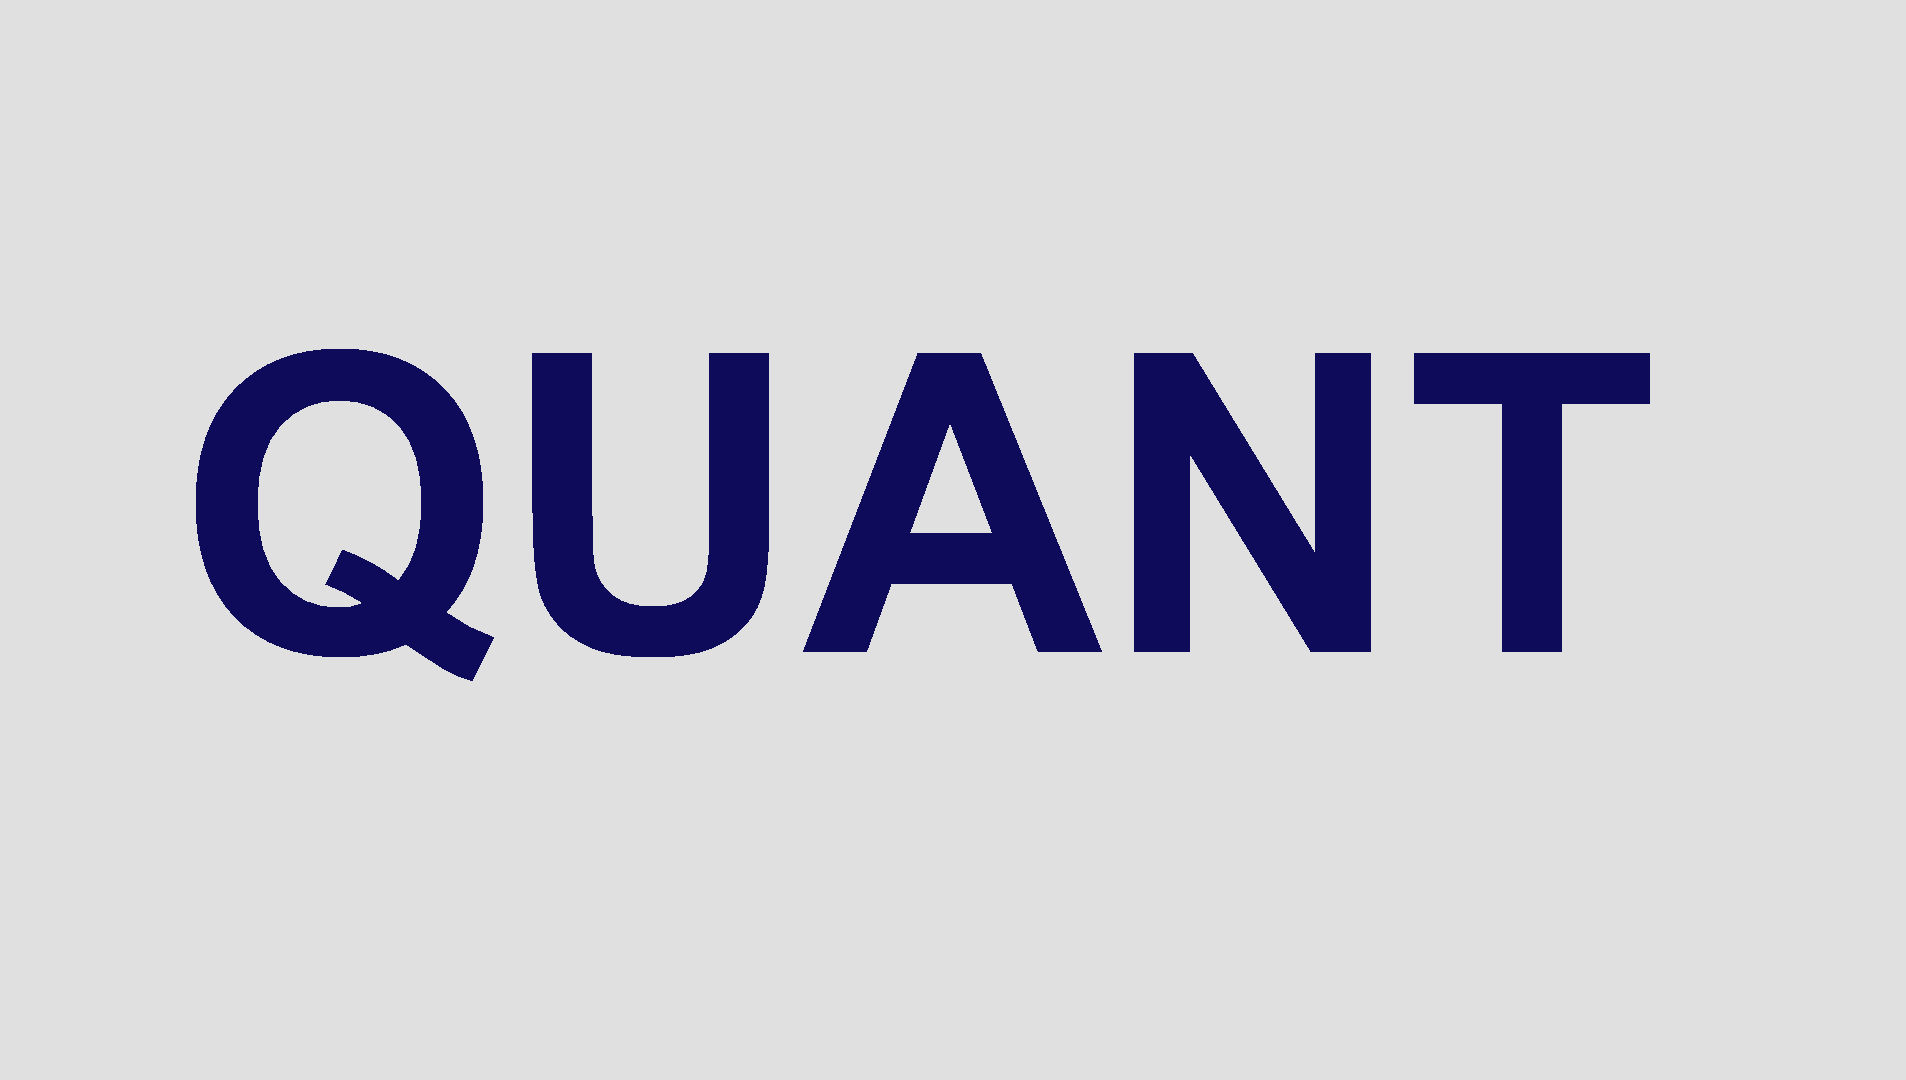 Quant Coin Price Analysis: Sideways momentum might end soon - TCR